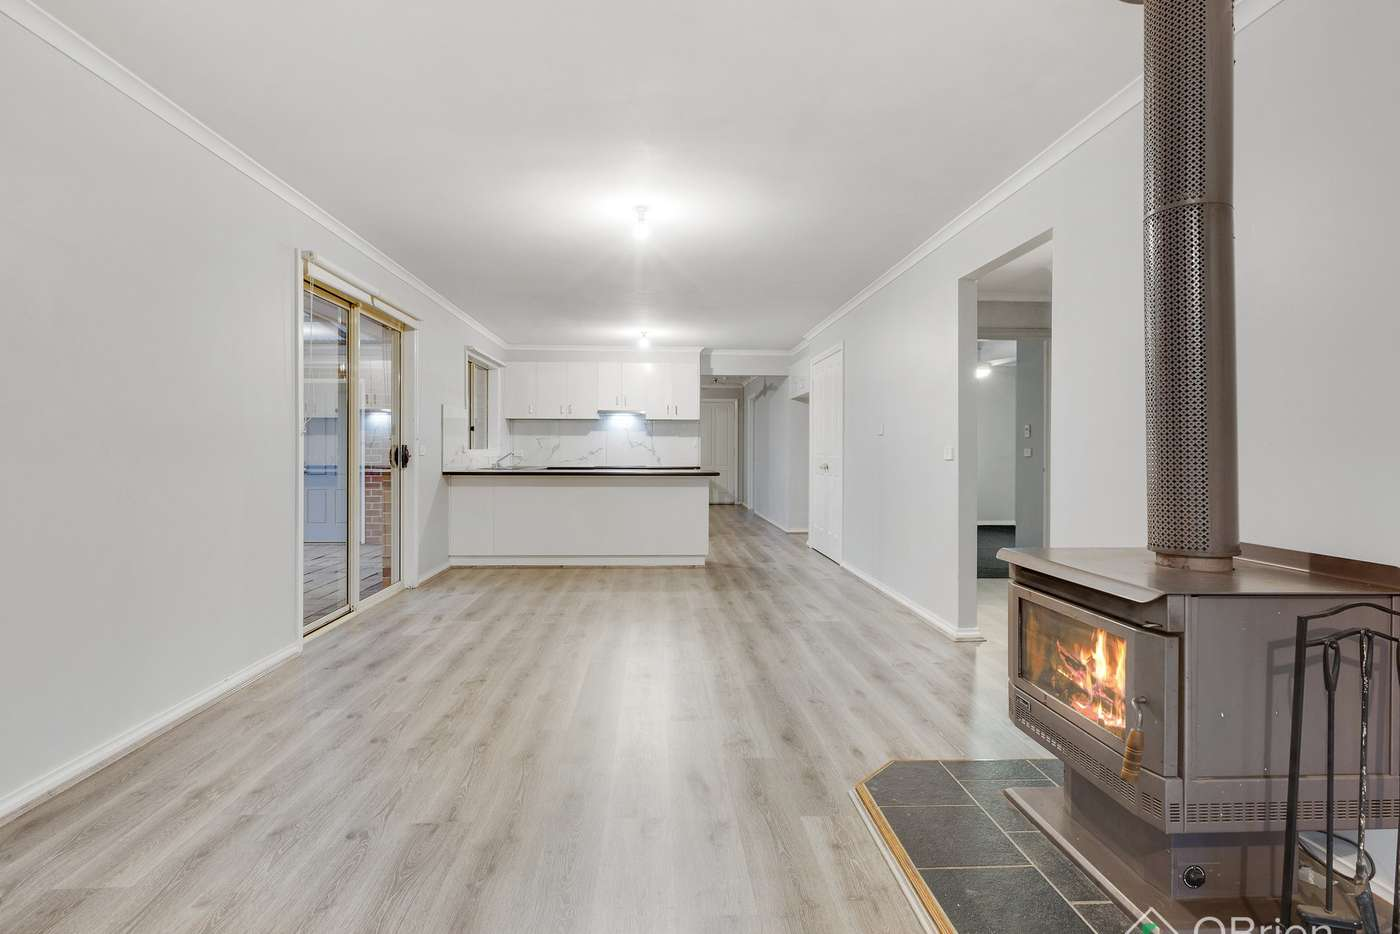 Sixth view of Homely house listing, 13 Station Street, Lang Lang VIC 3984